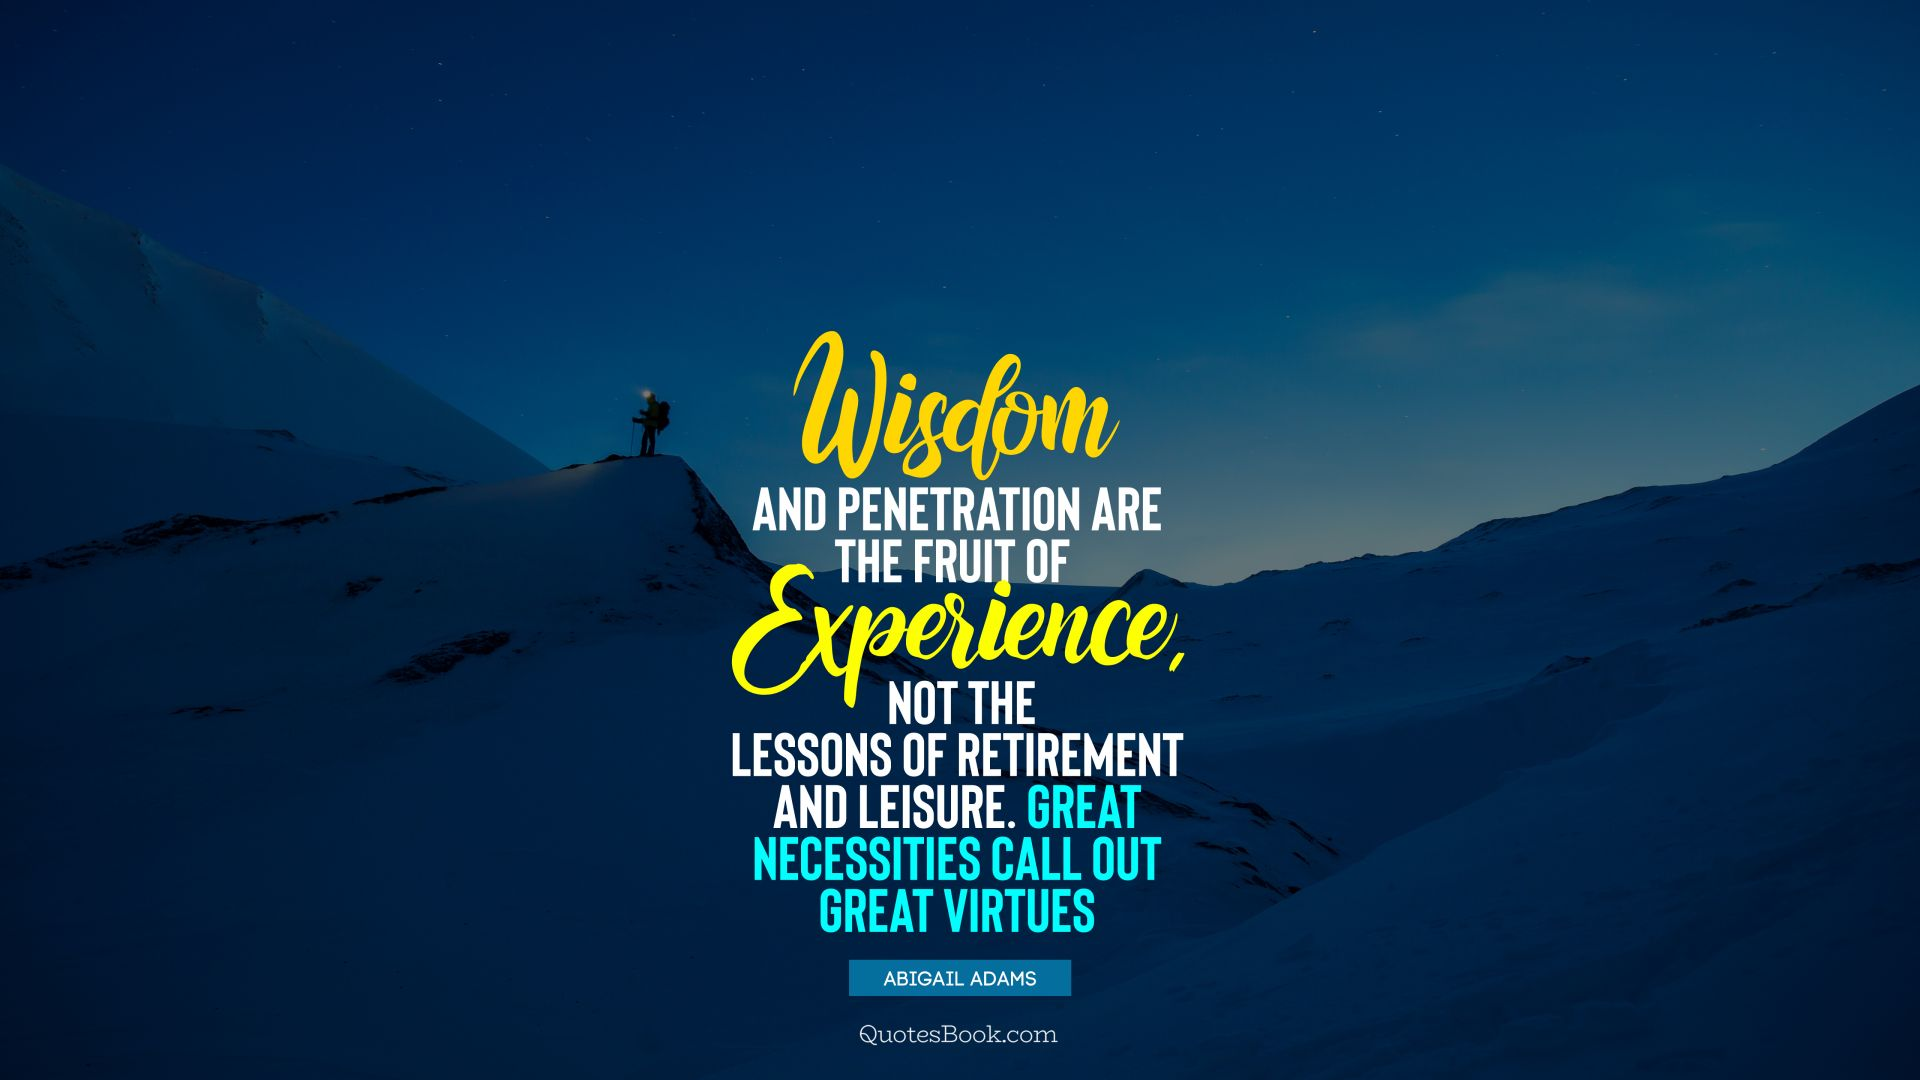 Wisdom and penetration are the fruit of experience, not the lessons of retirement and leisure. Great necessities call out great virtues. - Quote by Abigail Adams